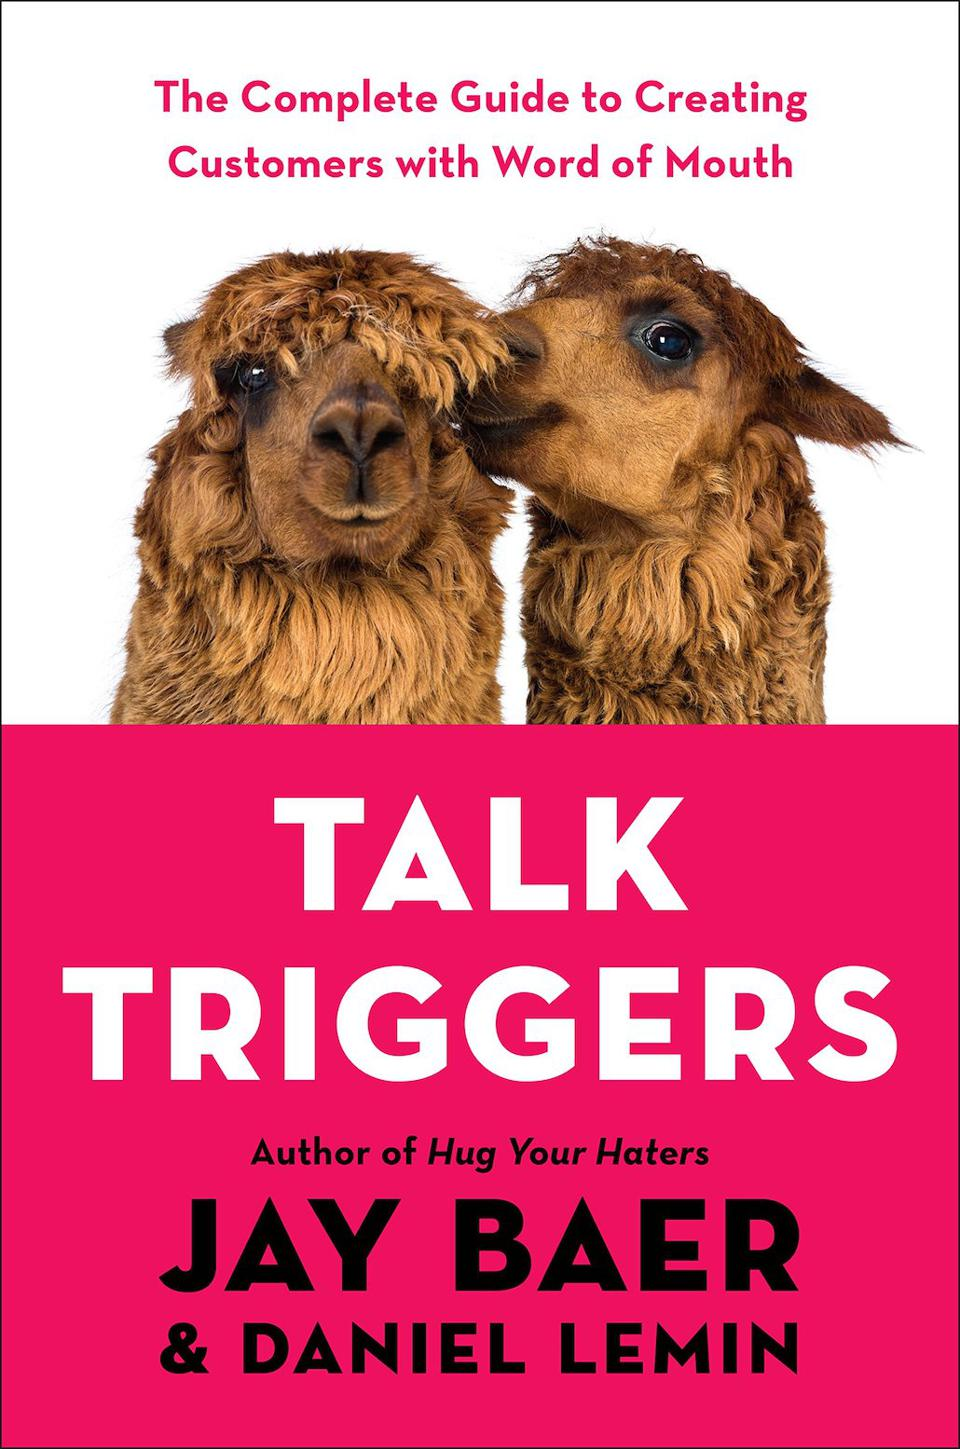 Talk Triggers: The Complete Guide to Creating Customers with Word of Mouth by Jay Baer and Daniel Lemin